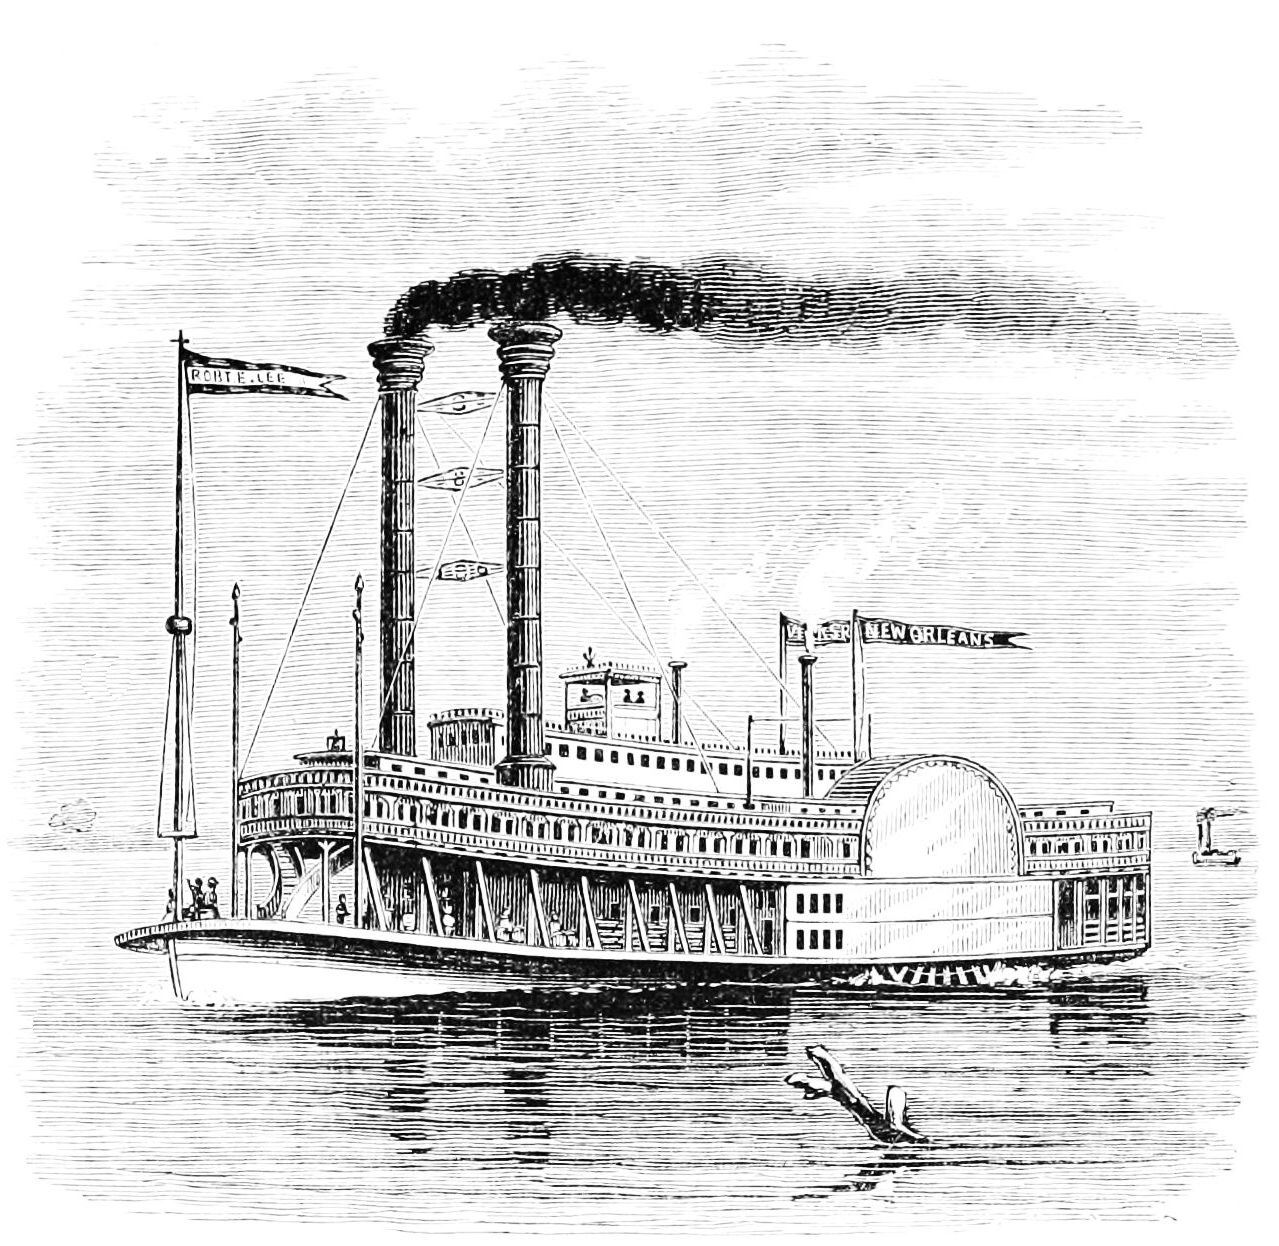 Old photo of a steamboat